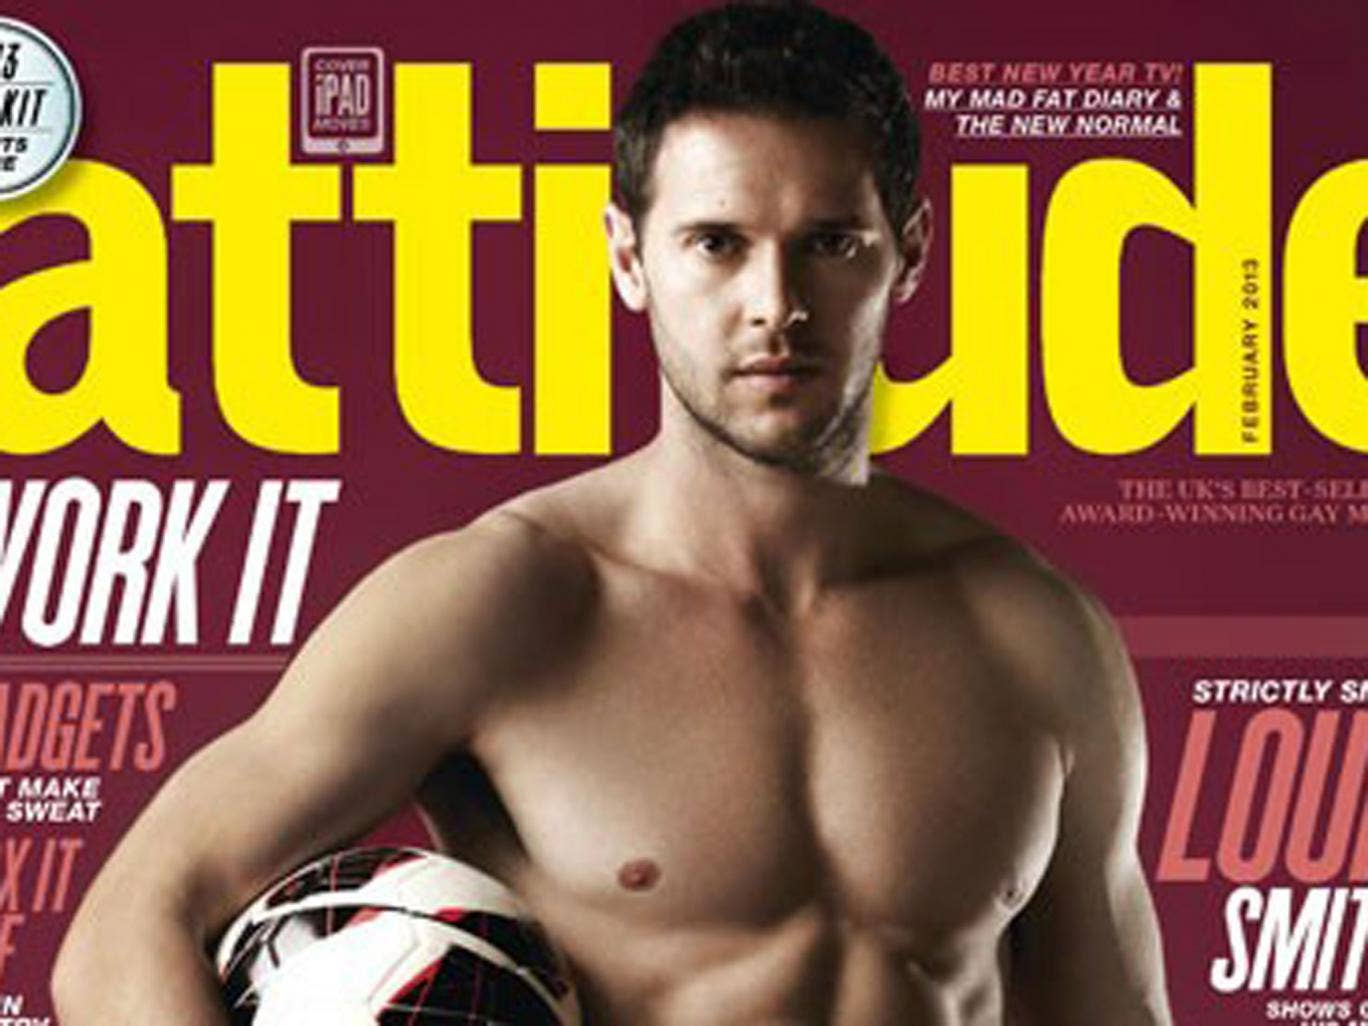 Matt Jarvis poses on the cover of 'Attitude' magazine